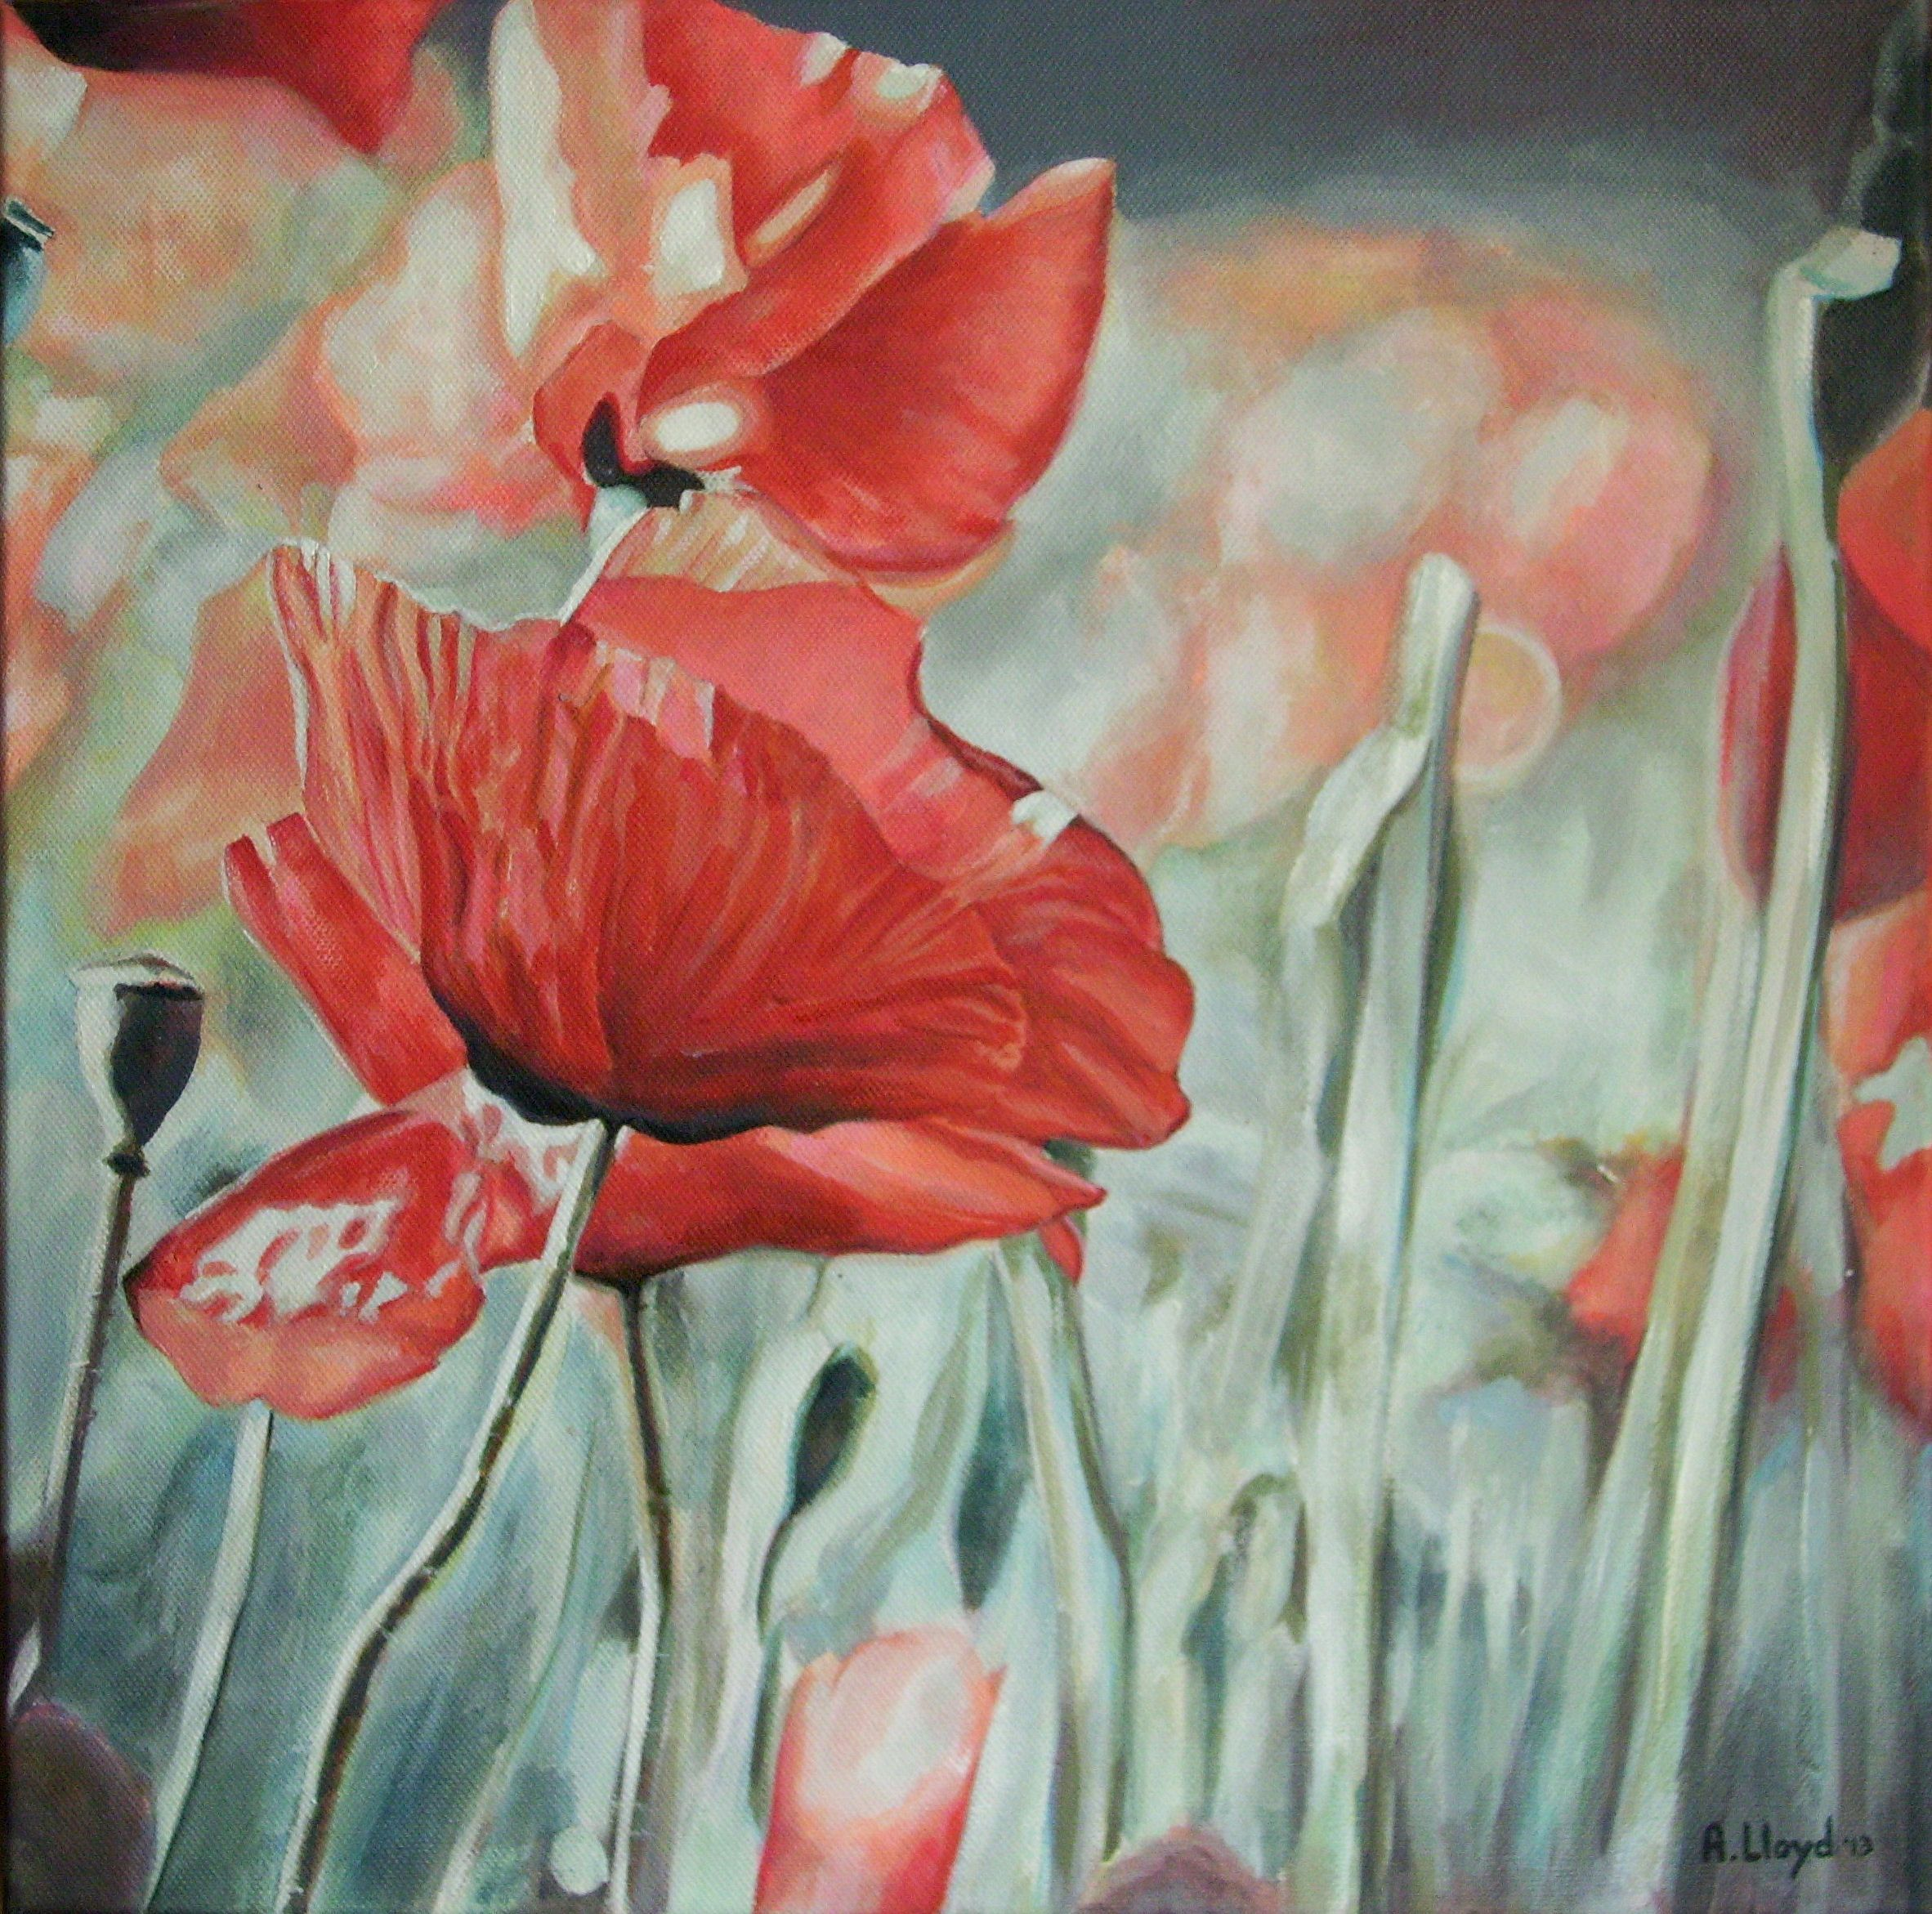 'Red Poppies', by Andy Lloyd, acrylic on canvas, September 2013